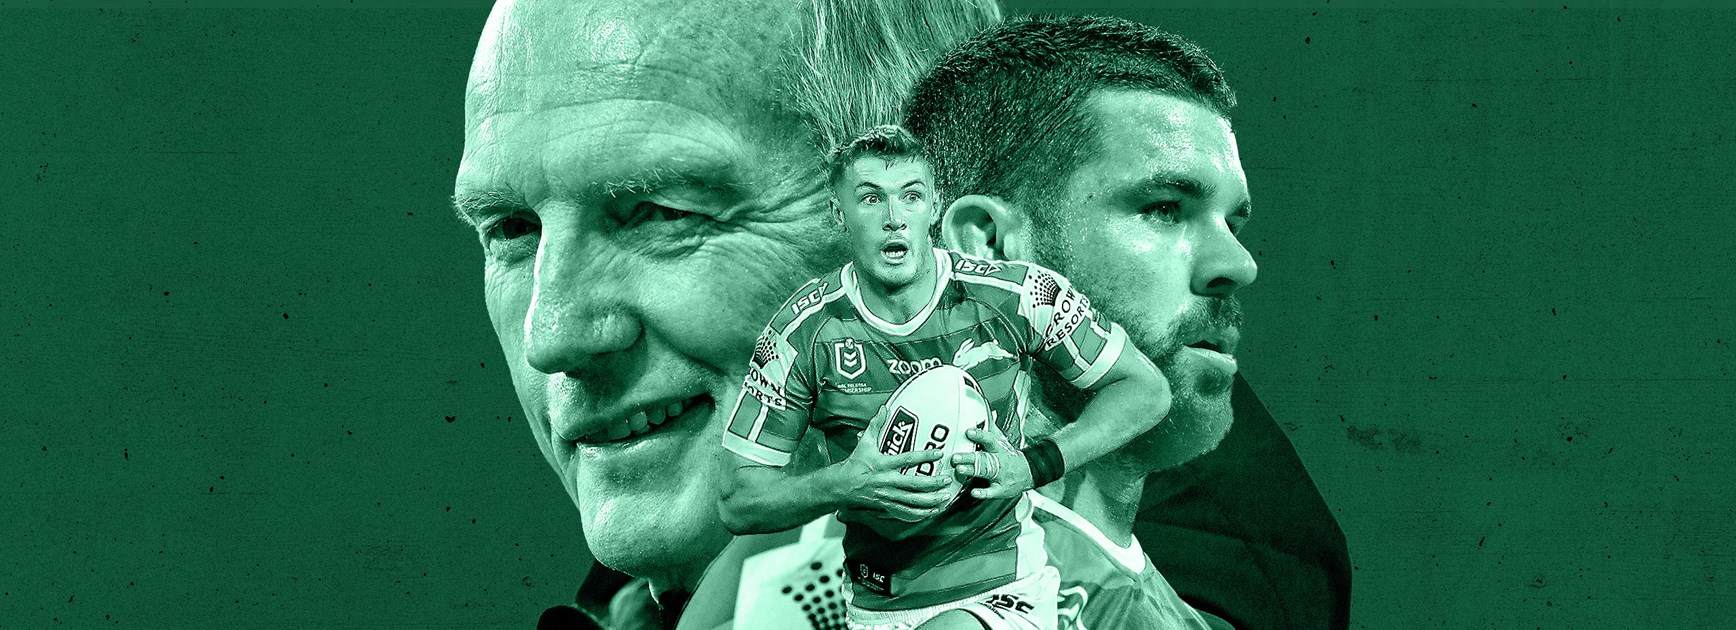 Rabbitohs 2021 season preview: Pieces in place to send Wayne out a winner